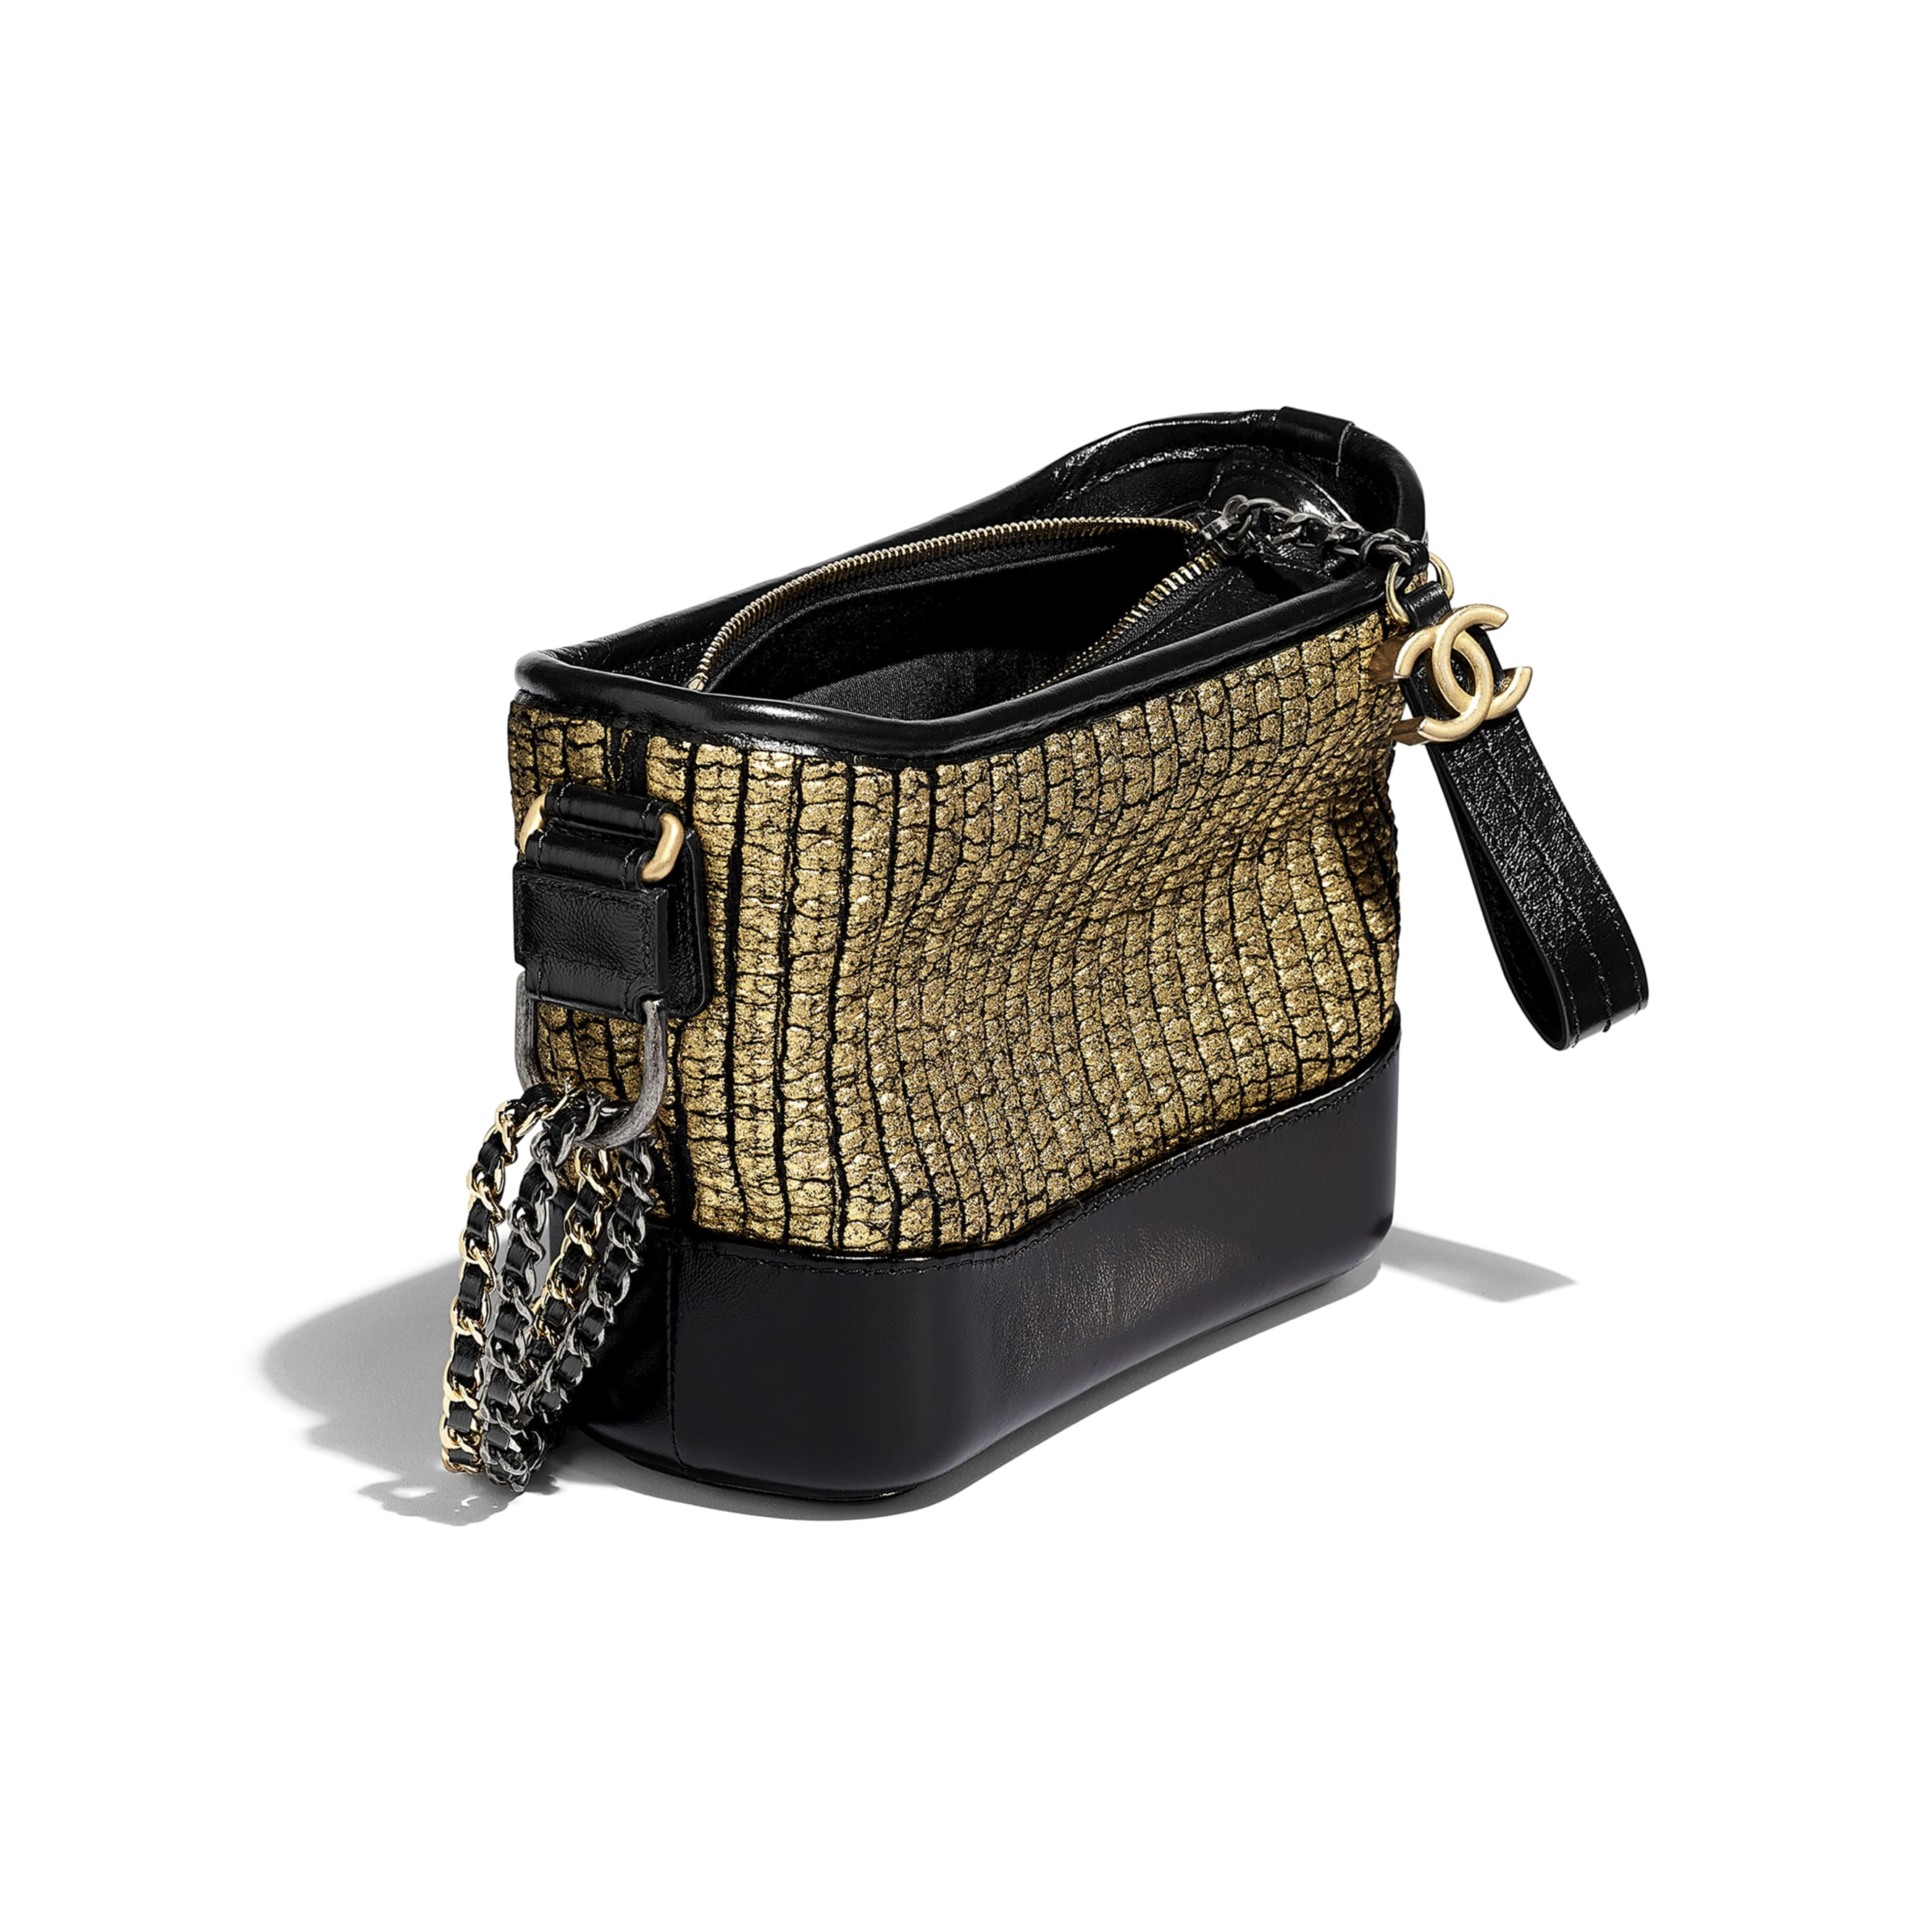 CHANEL'S GABRIELLE Small Hobo Bag - Gold & Black - Tweed, Calfskin, Gold-Tone & Silver-Tone Metal - Other view - see standard sized version